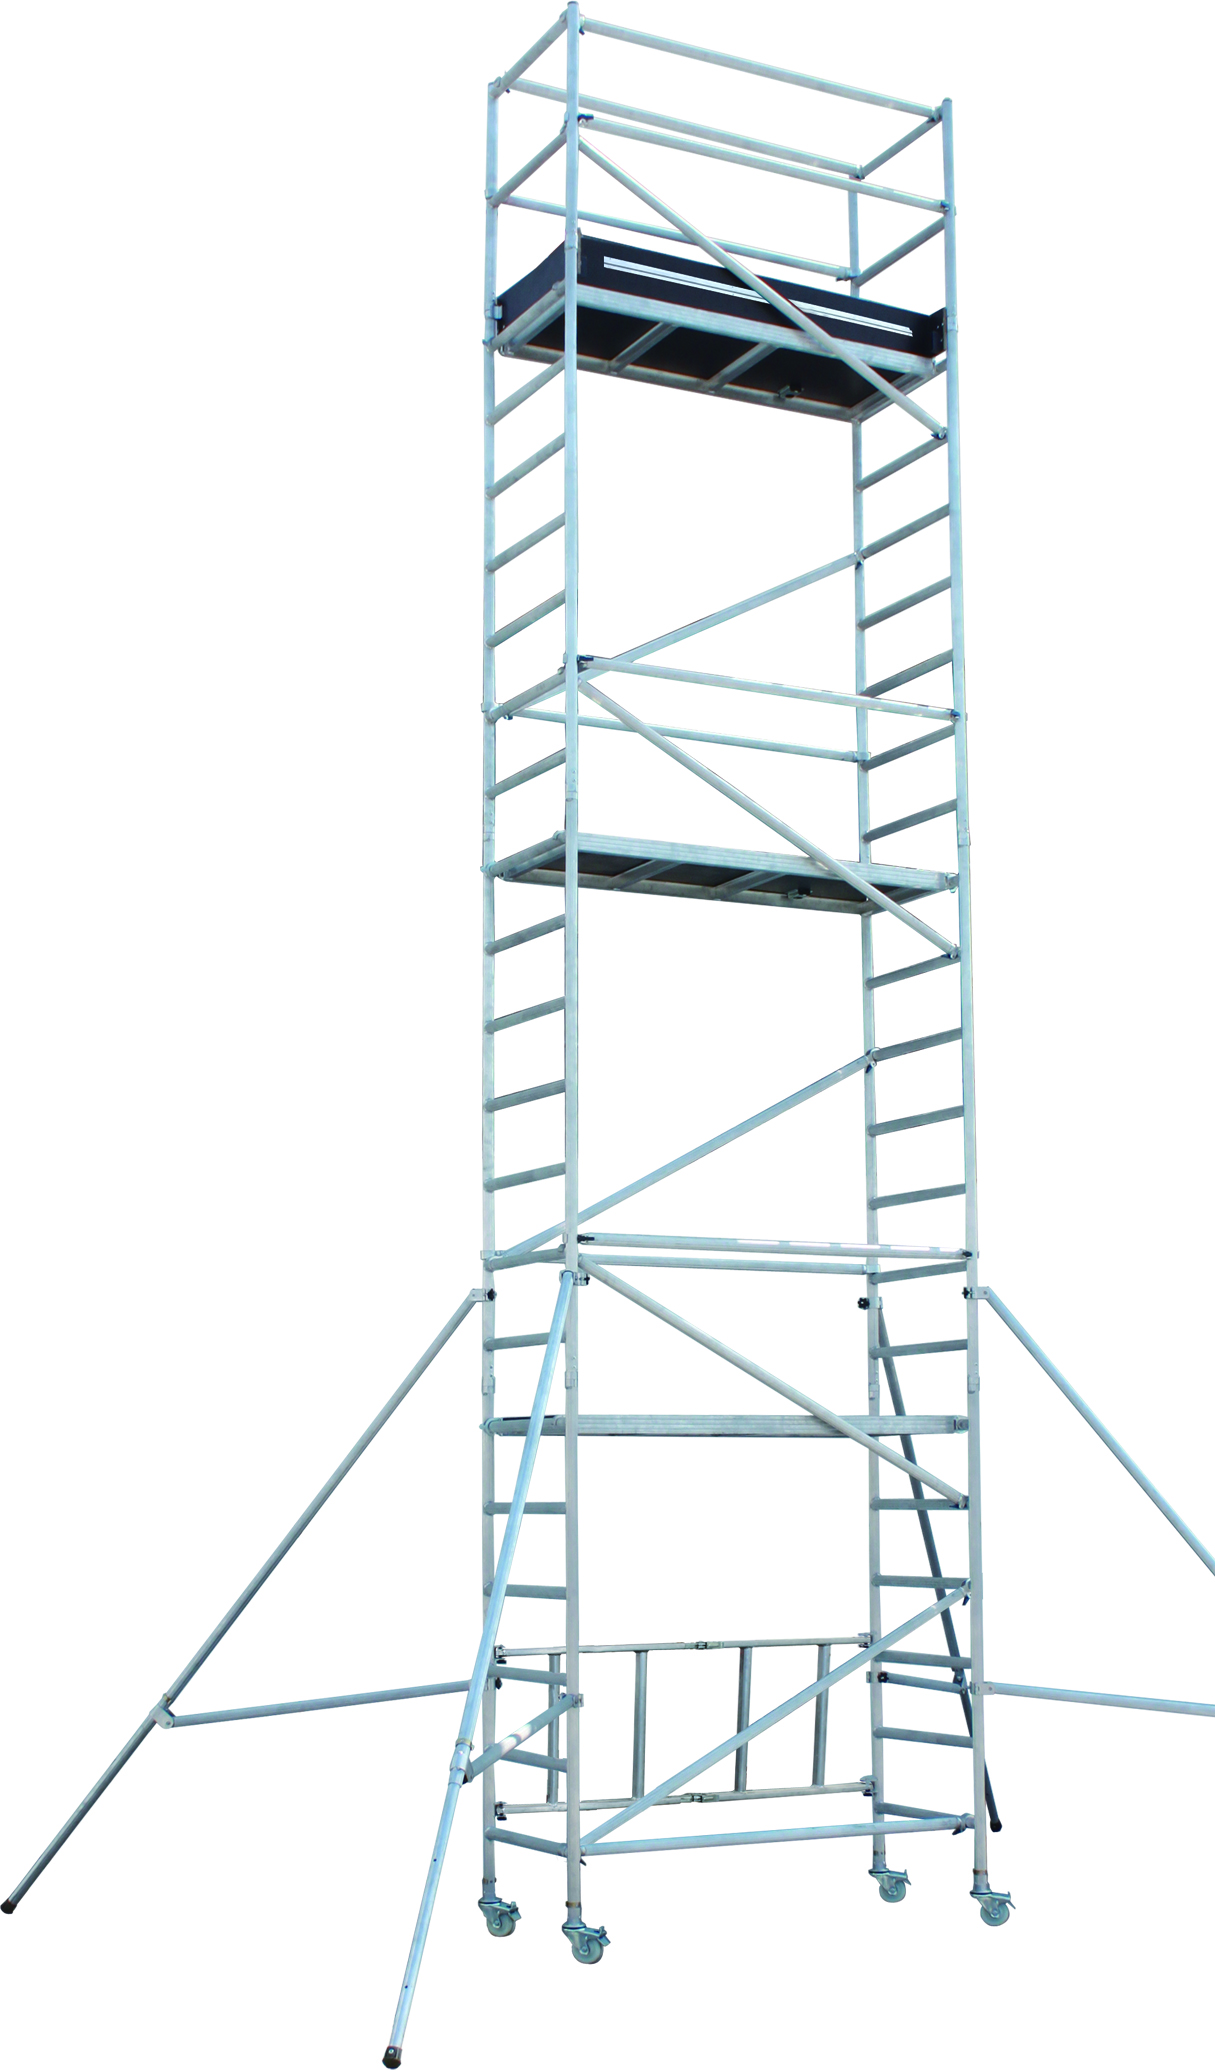 Aluminium Scaffolding - Working Height 5.8M ; Platform Height 7.8M;